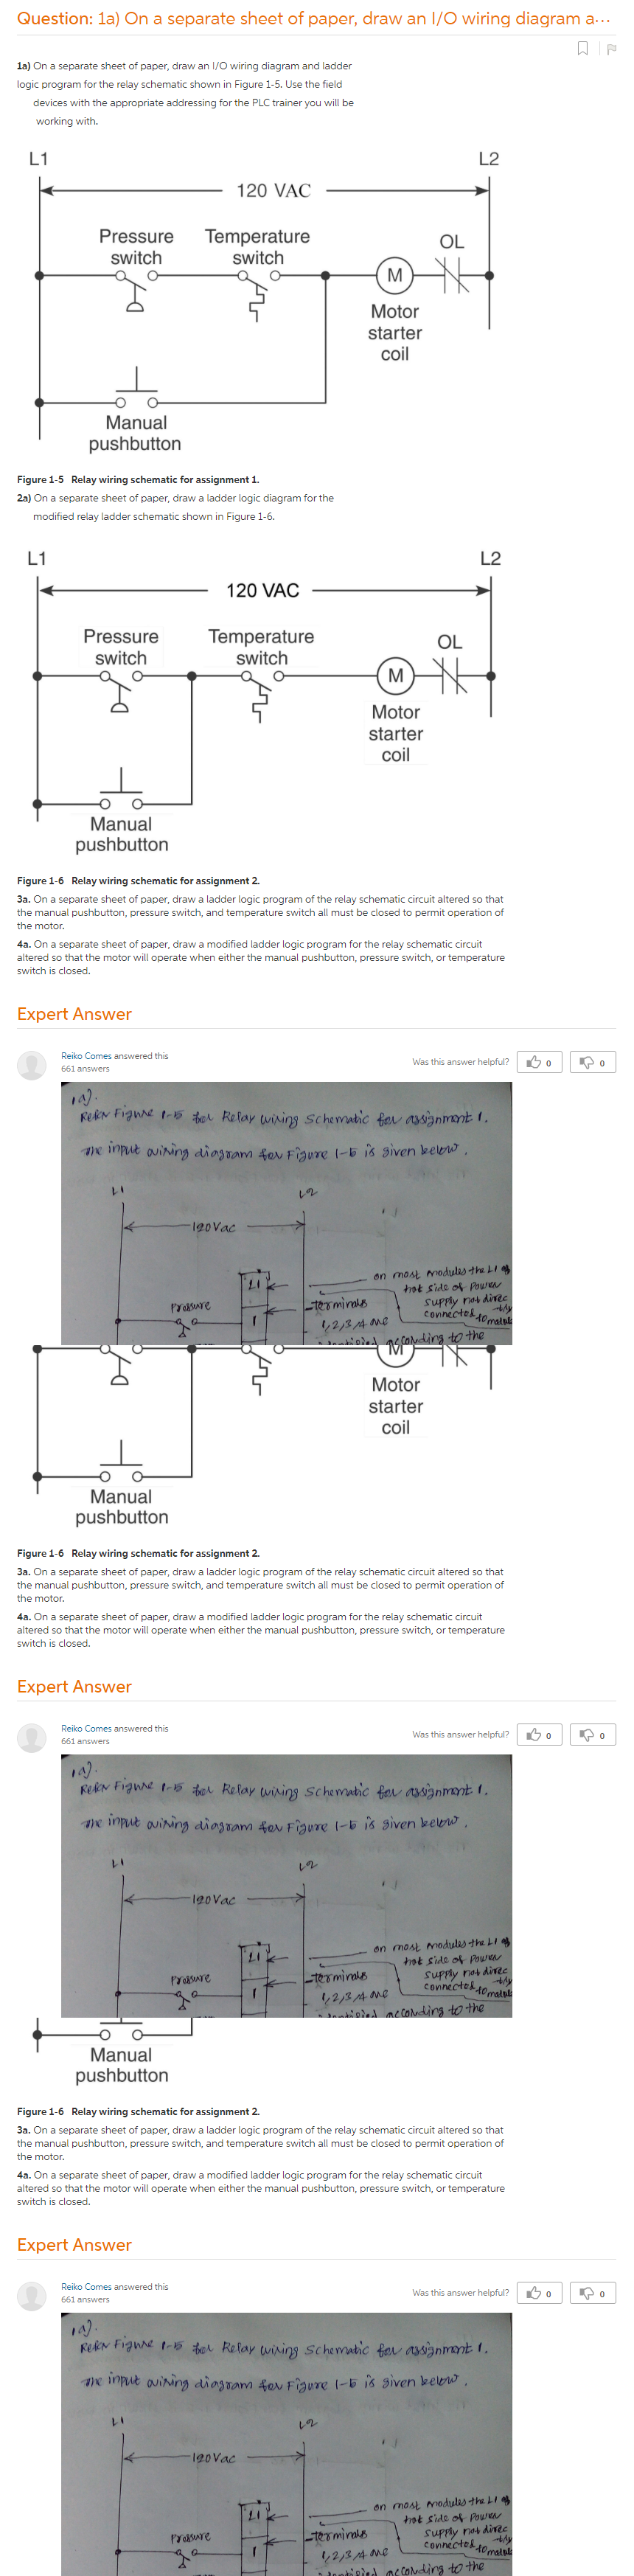 1a) On A Separate Sheet Of Paper, Draw An I/O Wiring Diagram And Ladder  Logic Program For The Relay Schematic Shown In Figure 1-5. Use The Field  Devices With The Appropriate Addressing For The PLC Trainer You Will Be  Working With. Figure 1-5 Relay Wiring Schematic For Assignment 1. 2a) On A  Separate Sheet Of Paper, Draw A Ladder Logic Diagram For The ...